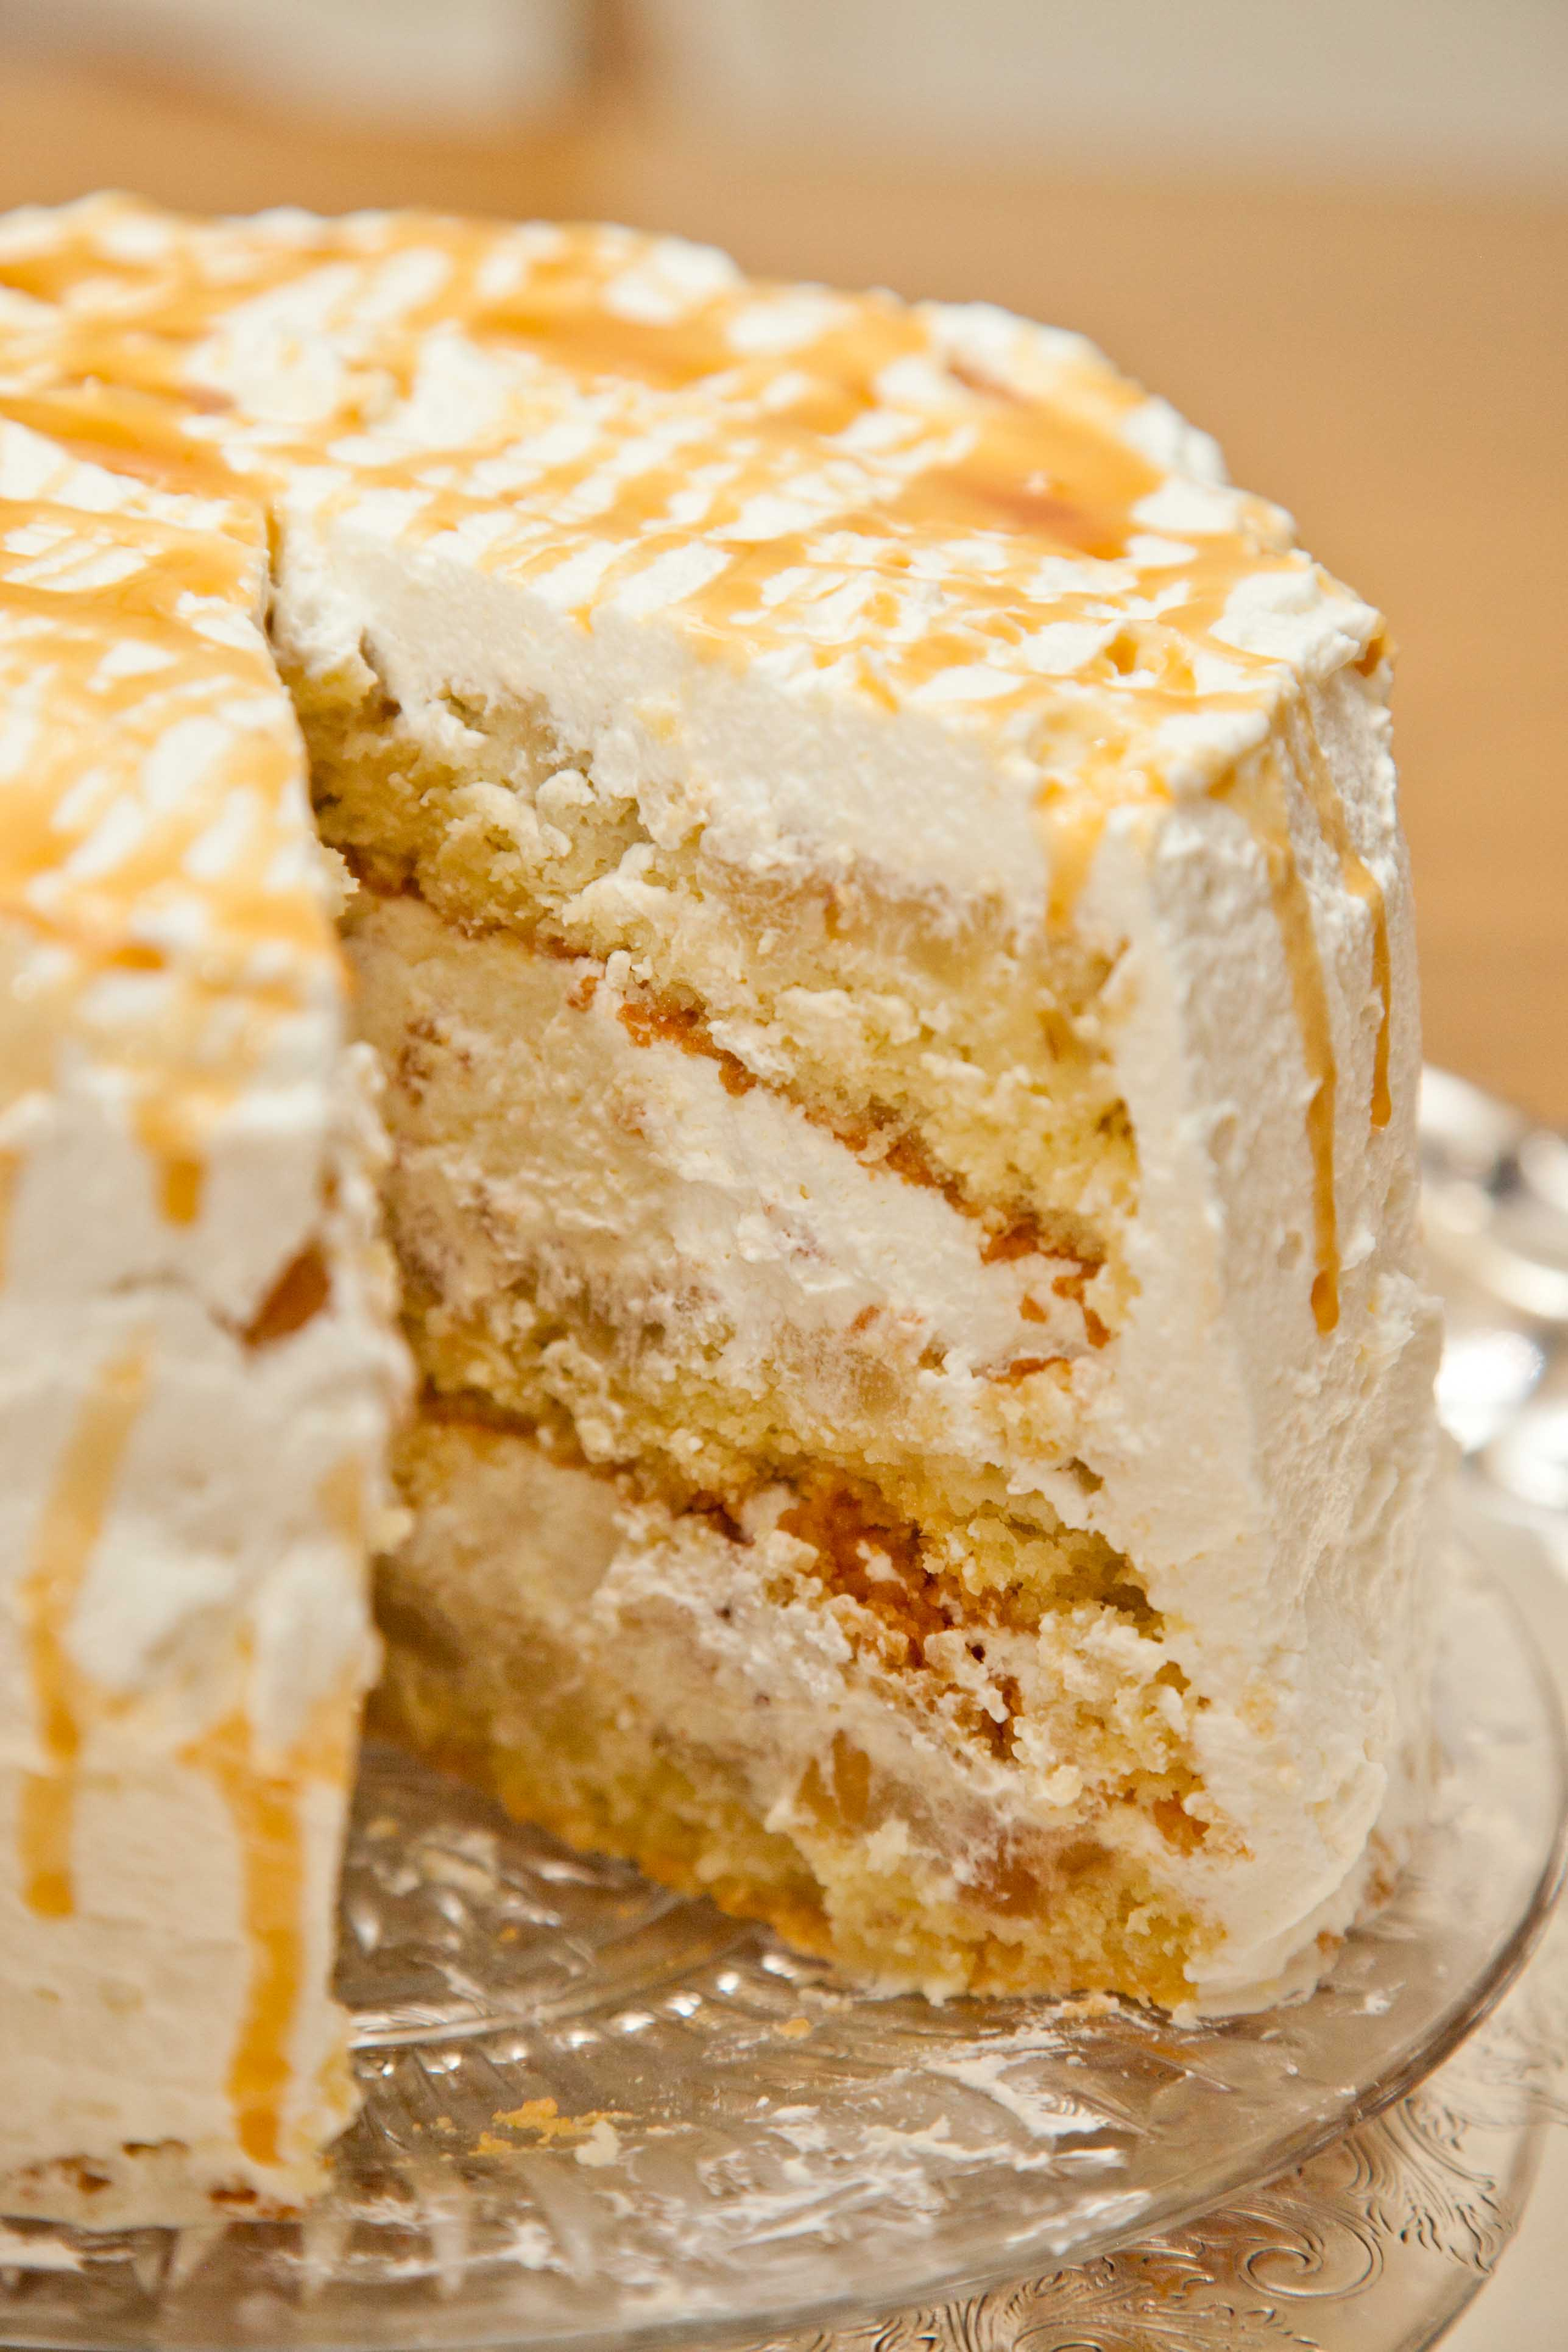 Pear Ginger Cake (with Whipped Cream Frosting) |